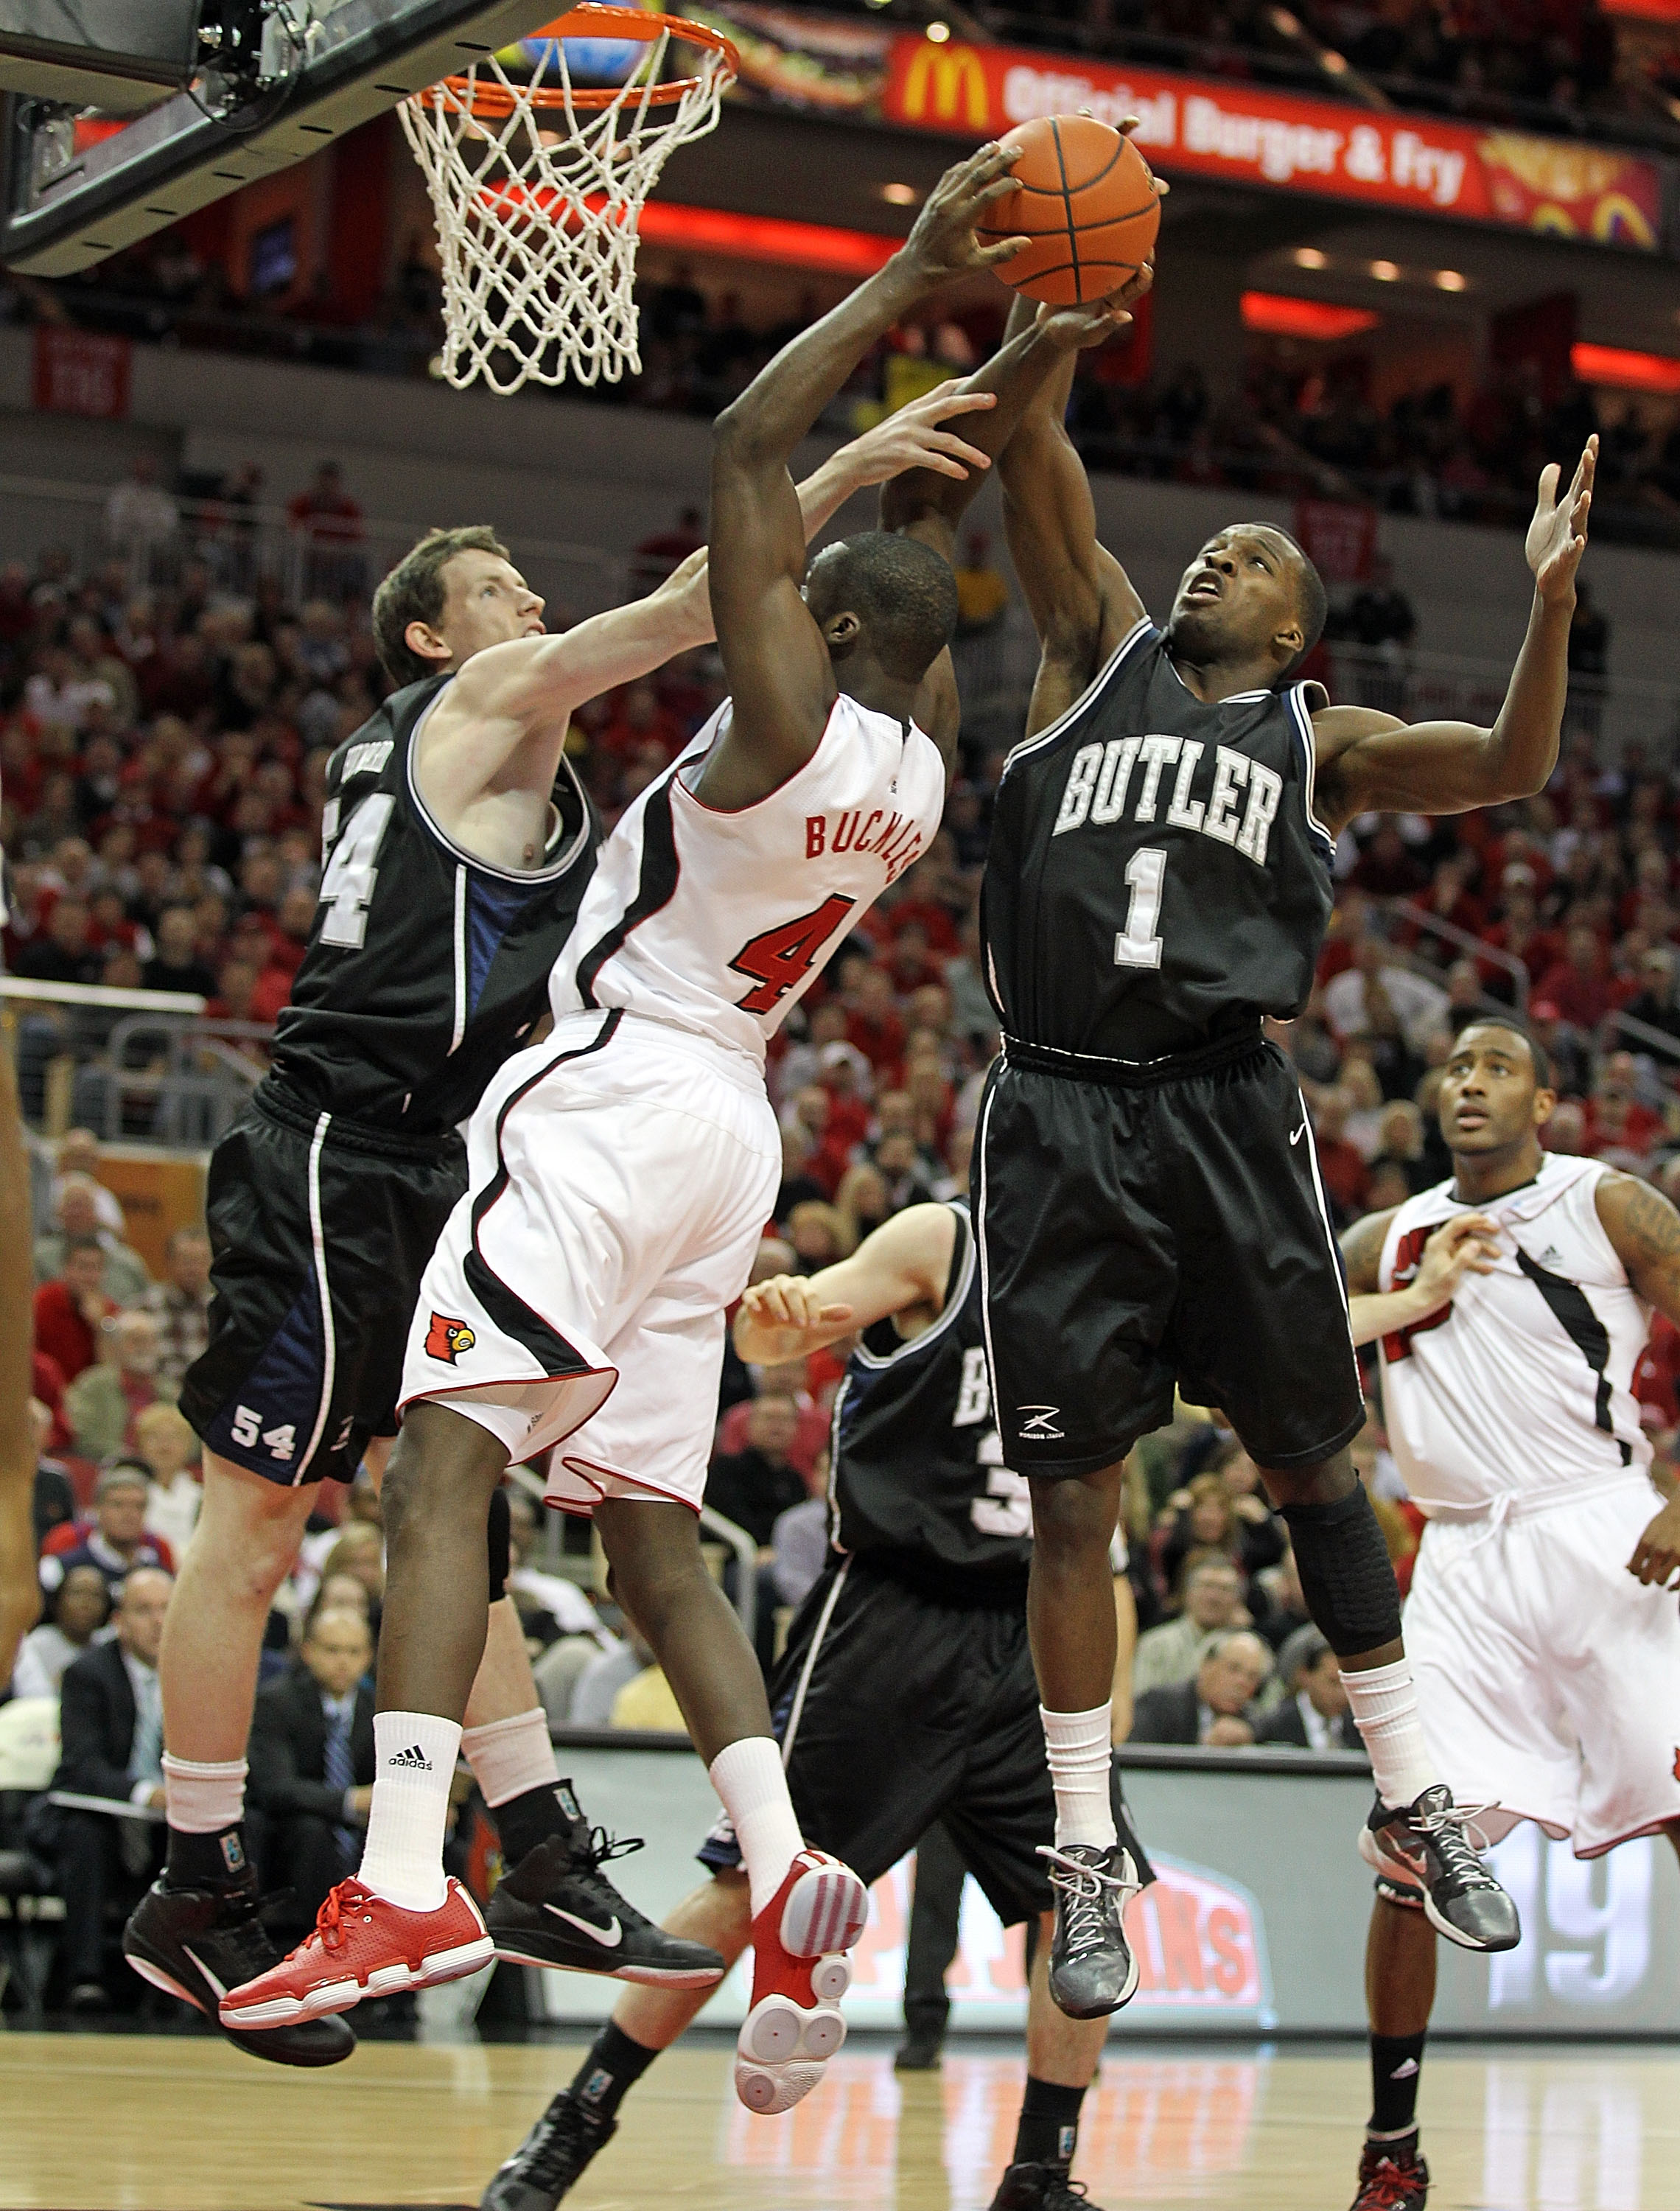 LOUISVILLE, KY - NOVEMBER 16:  Matt Howard #54 and Shelvin Mack #1 of the Butler Bulldogs defend the shot of  Rakeem Buckles #4 of the Louisville Cardinals during the game at the KFC Yum! Center on November 16, 2010 in Louisville, Kentucky.  (Photo by And